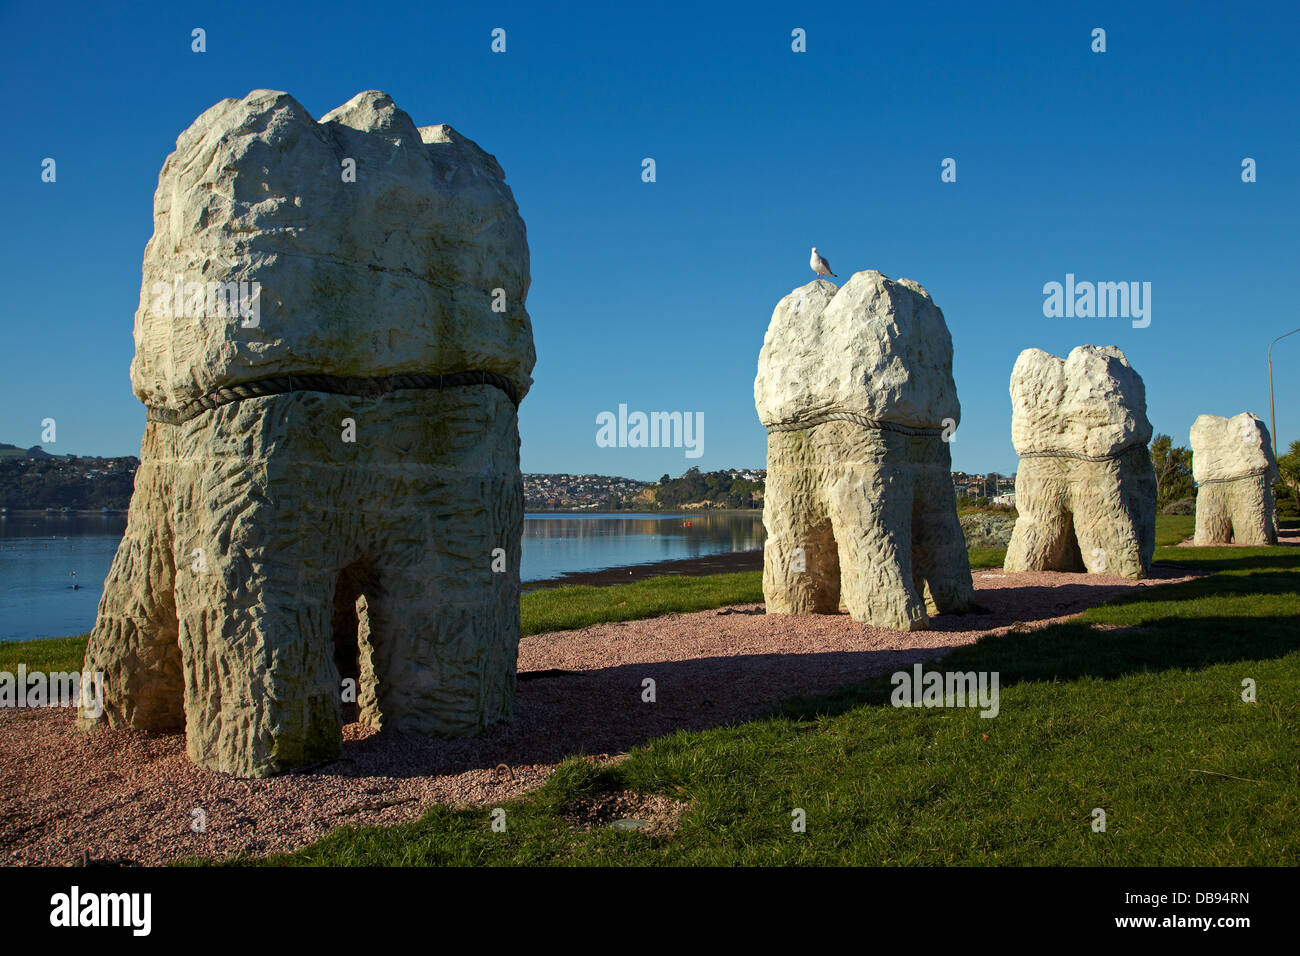 Harbour Mouth Molars by artist Regan Gentry, and Otago Harbour, Dunedin, South Island, New Zealand - Stock Image